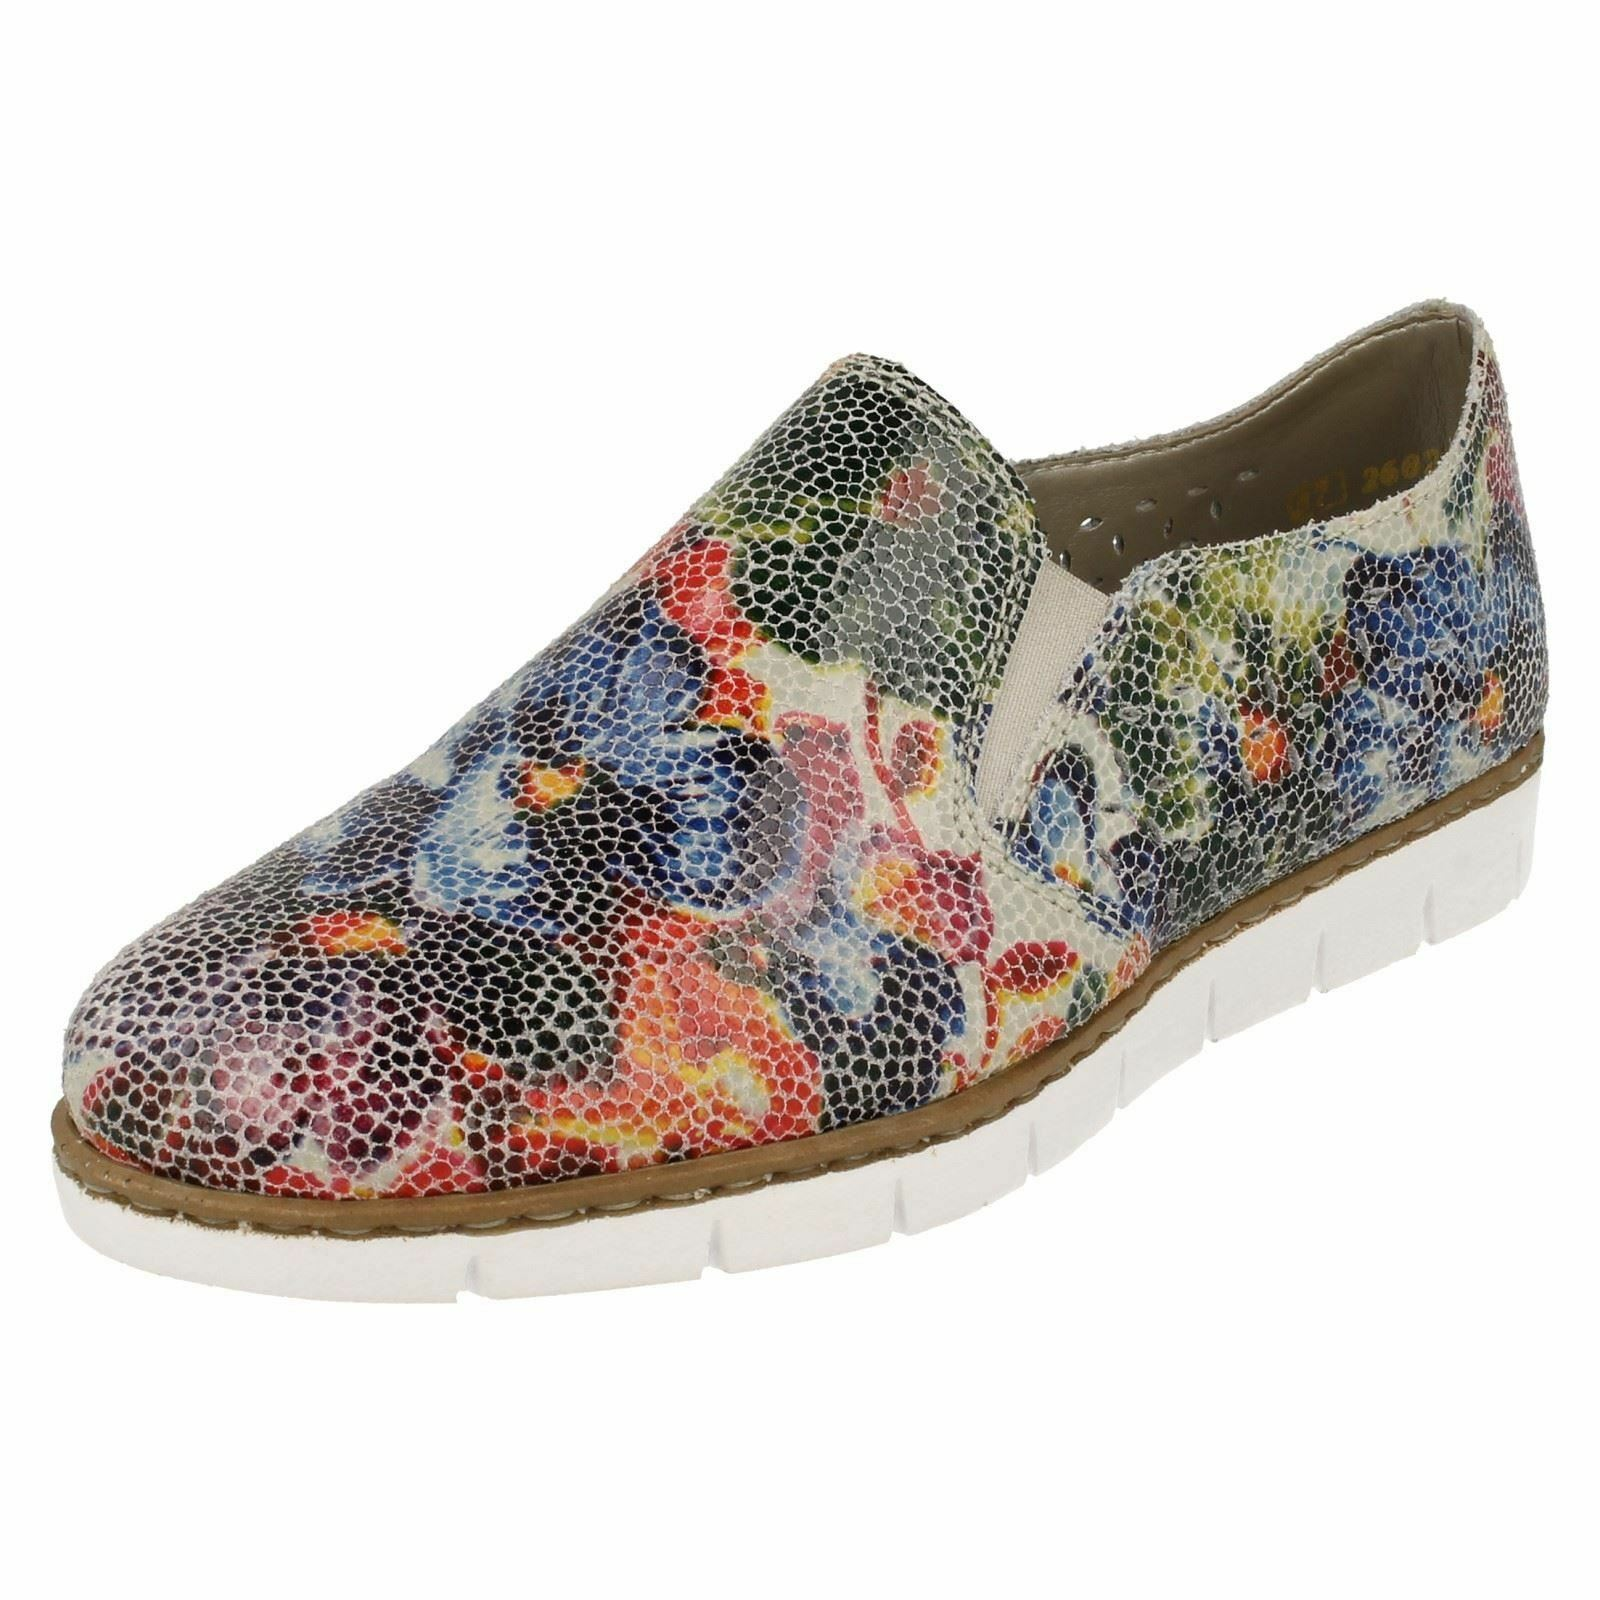 Onorevoli Rieker M1356 MULTI-COLOUR pattern in Pelle Casual Mocassini Scarpe